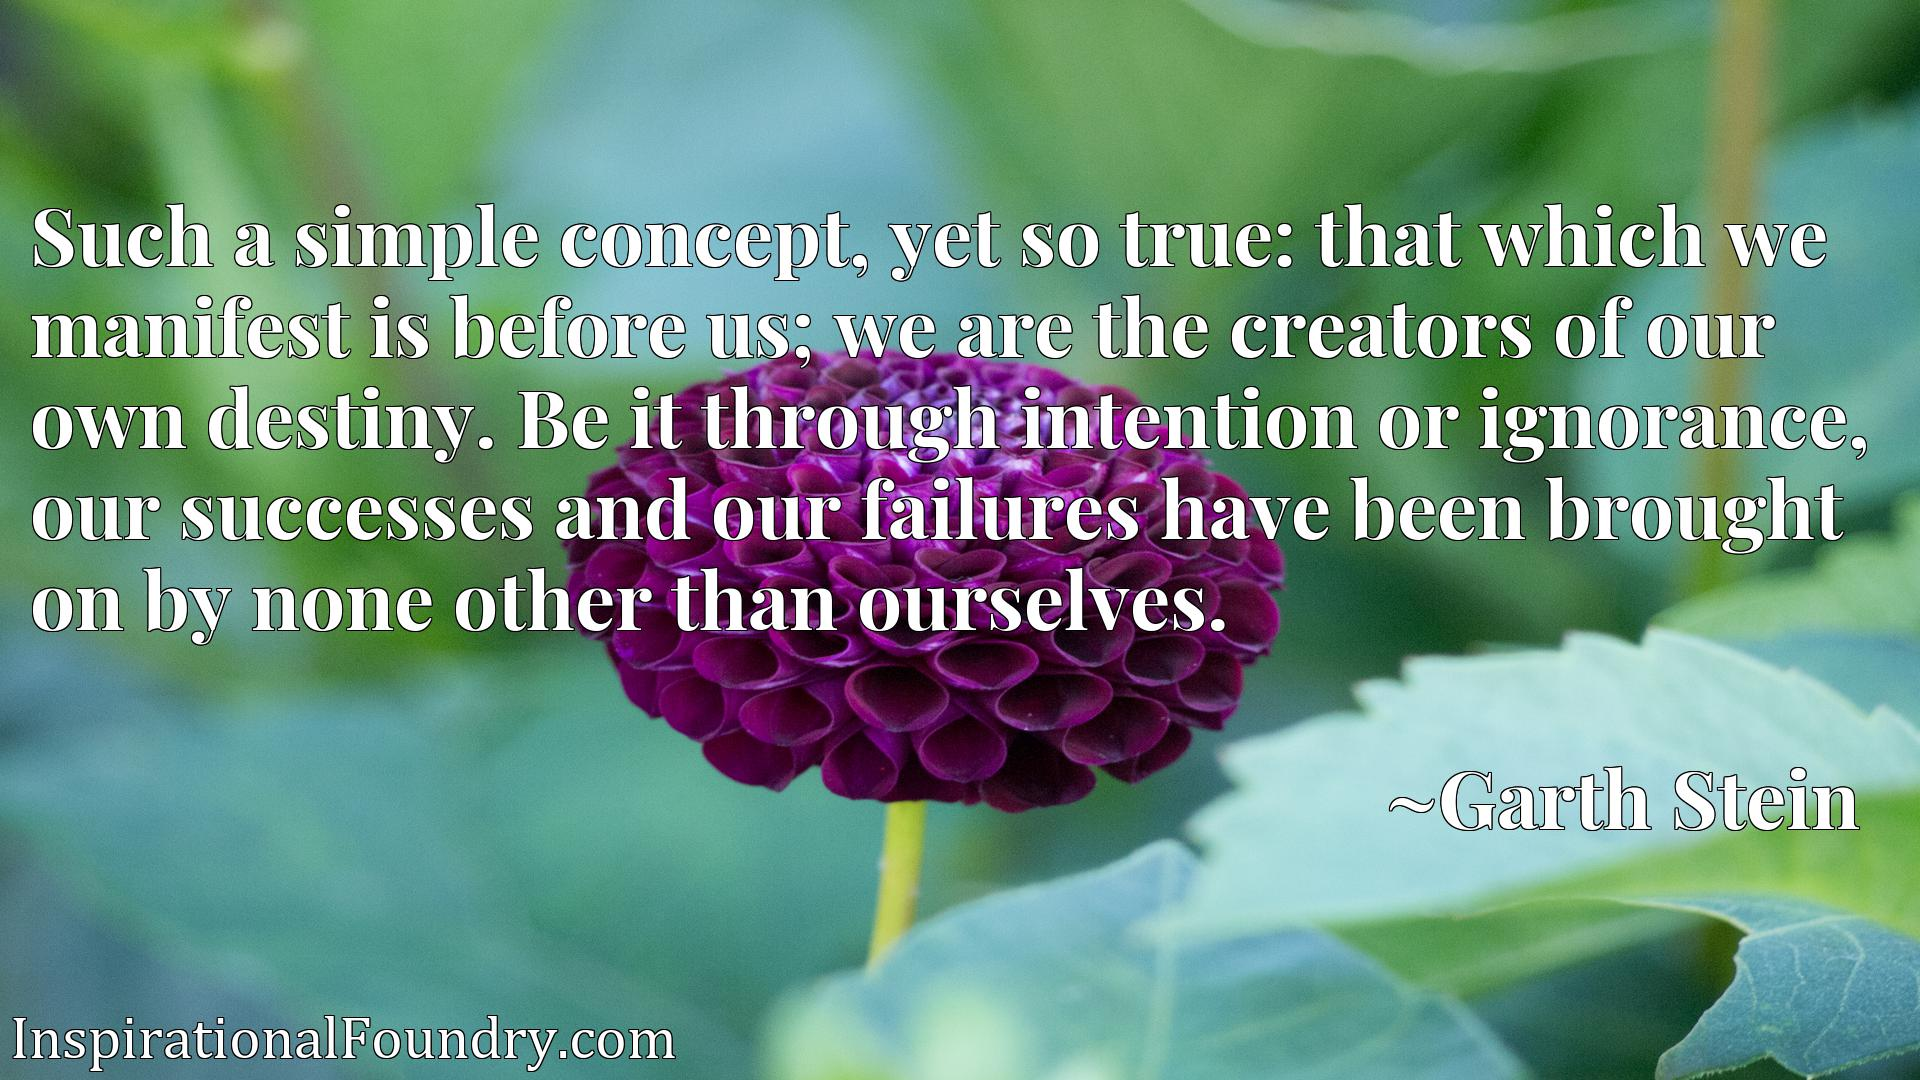 Such a simple concept, yet so true: that which we manifest is before us; we are the creators of our own destiny. Be it through intention or ignorance, our successes and our failures have been brought on by none other than ourselves.